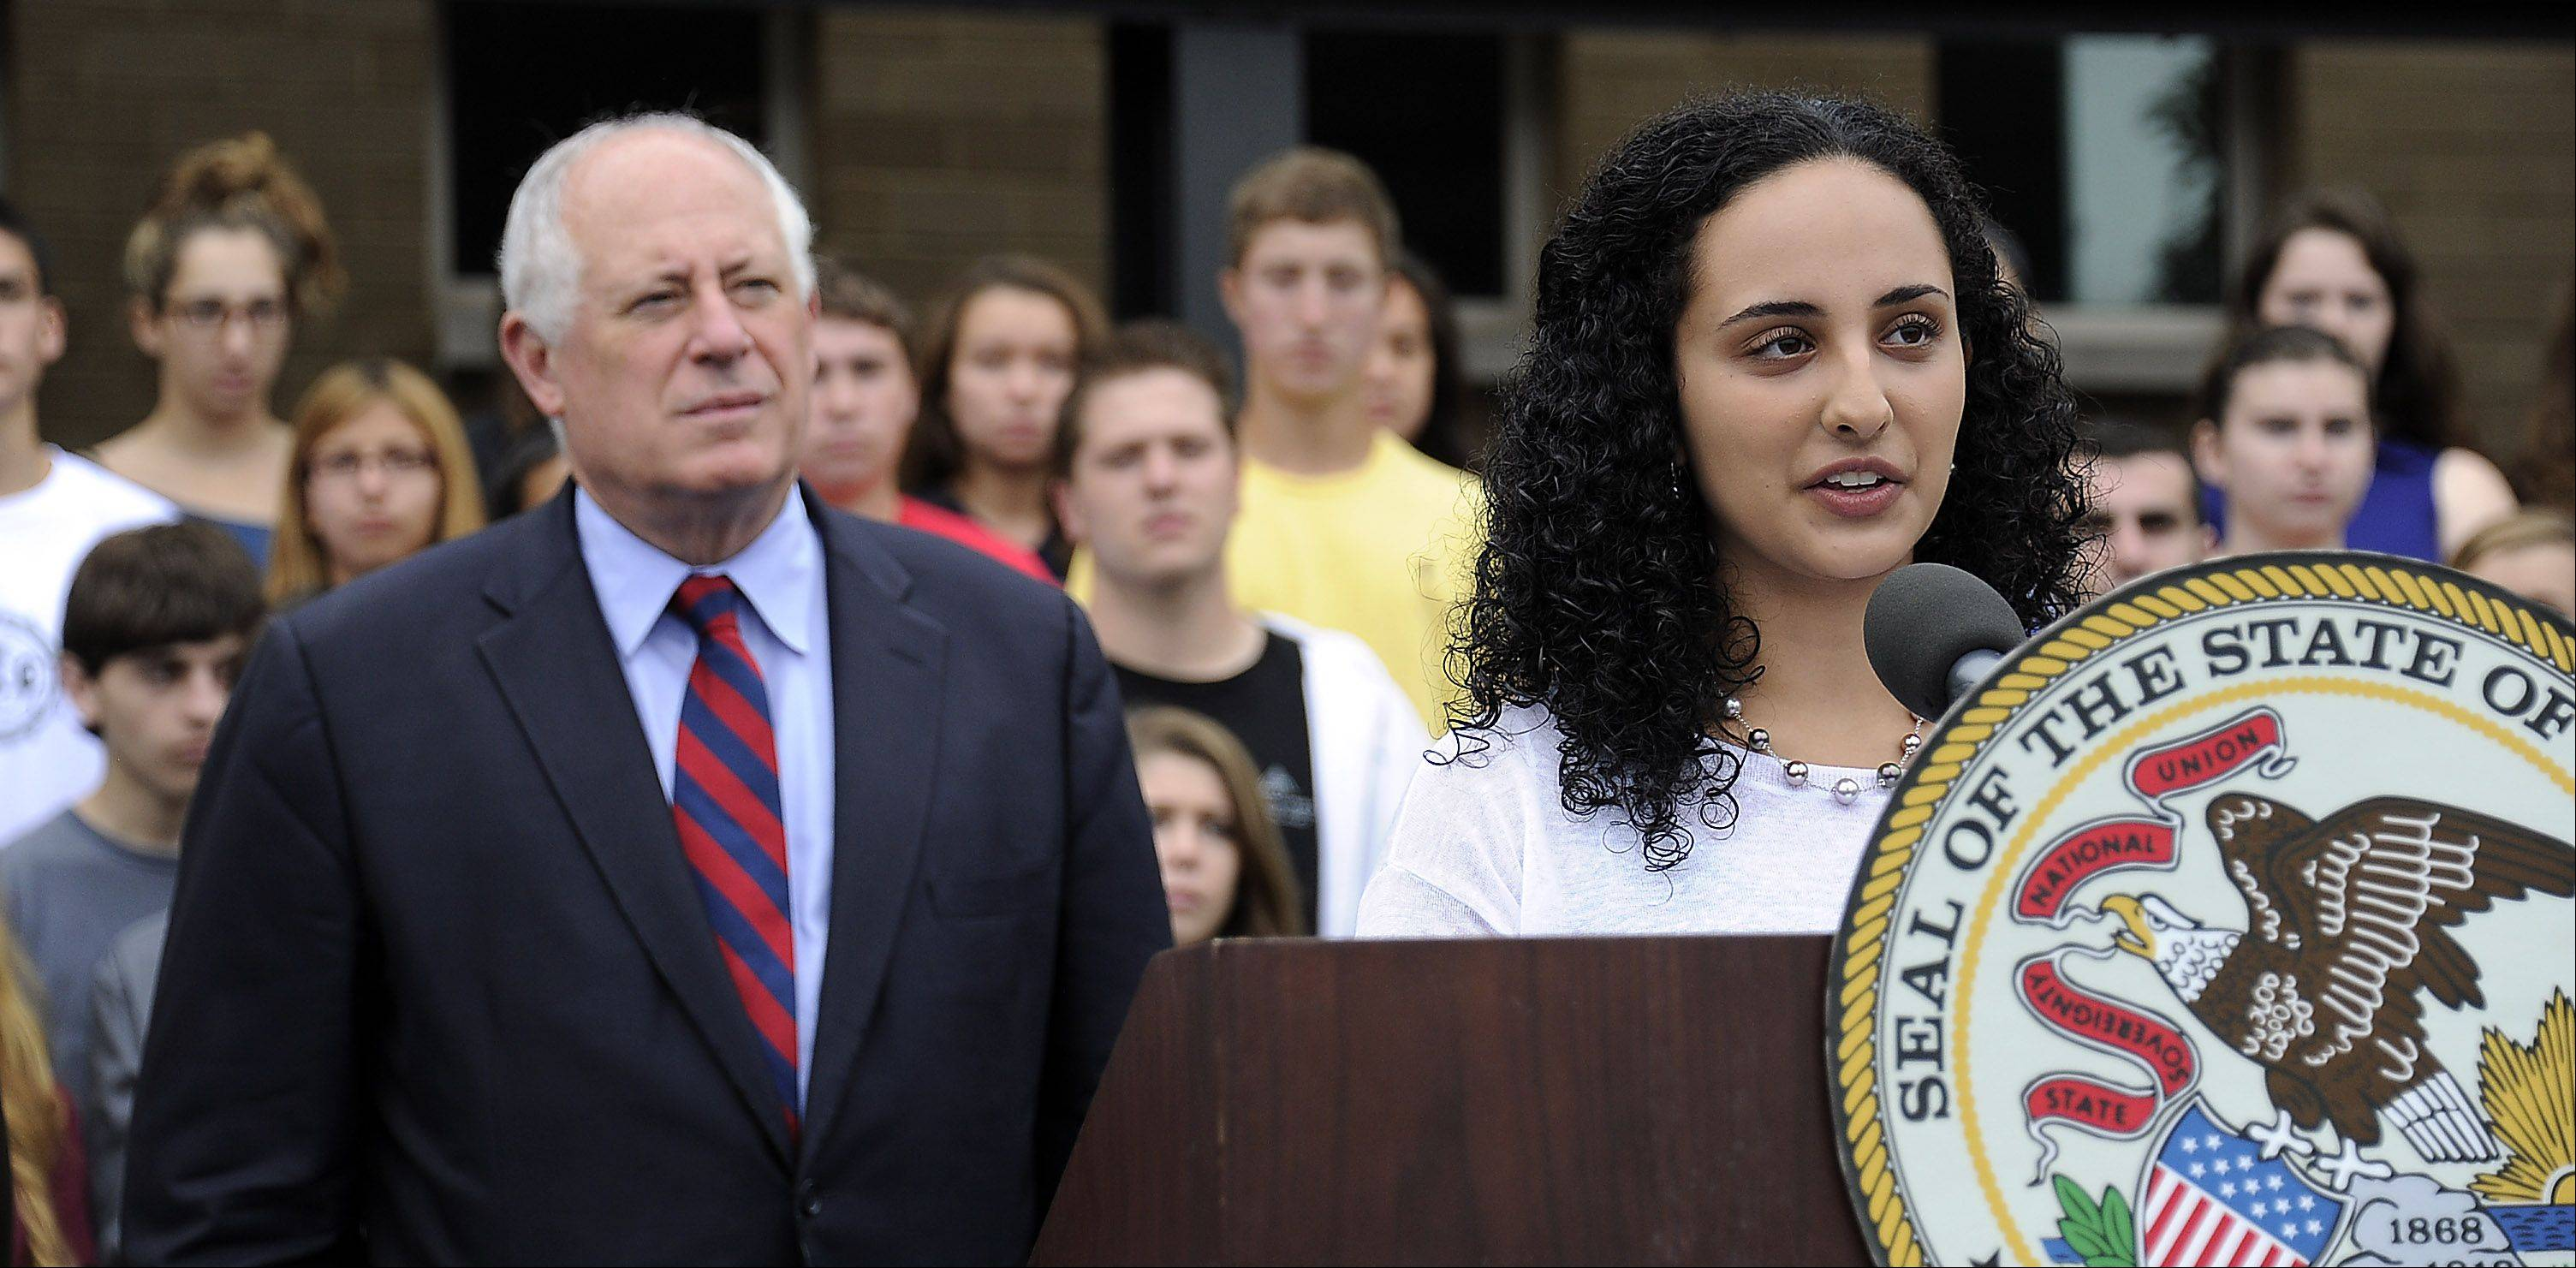 Stevenson High School student Neli Farahmandpour, 17, of Long Grove, talks about the new bill Gov. Pat Quinn will sign into law expanding voting rights to some 17-year-olds. Wednesday's bill signing was at the Lincolnshire school.